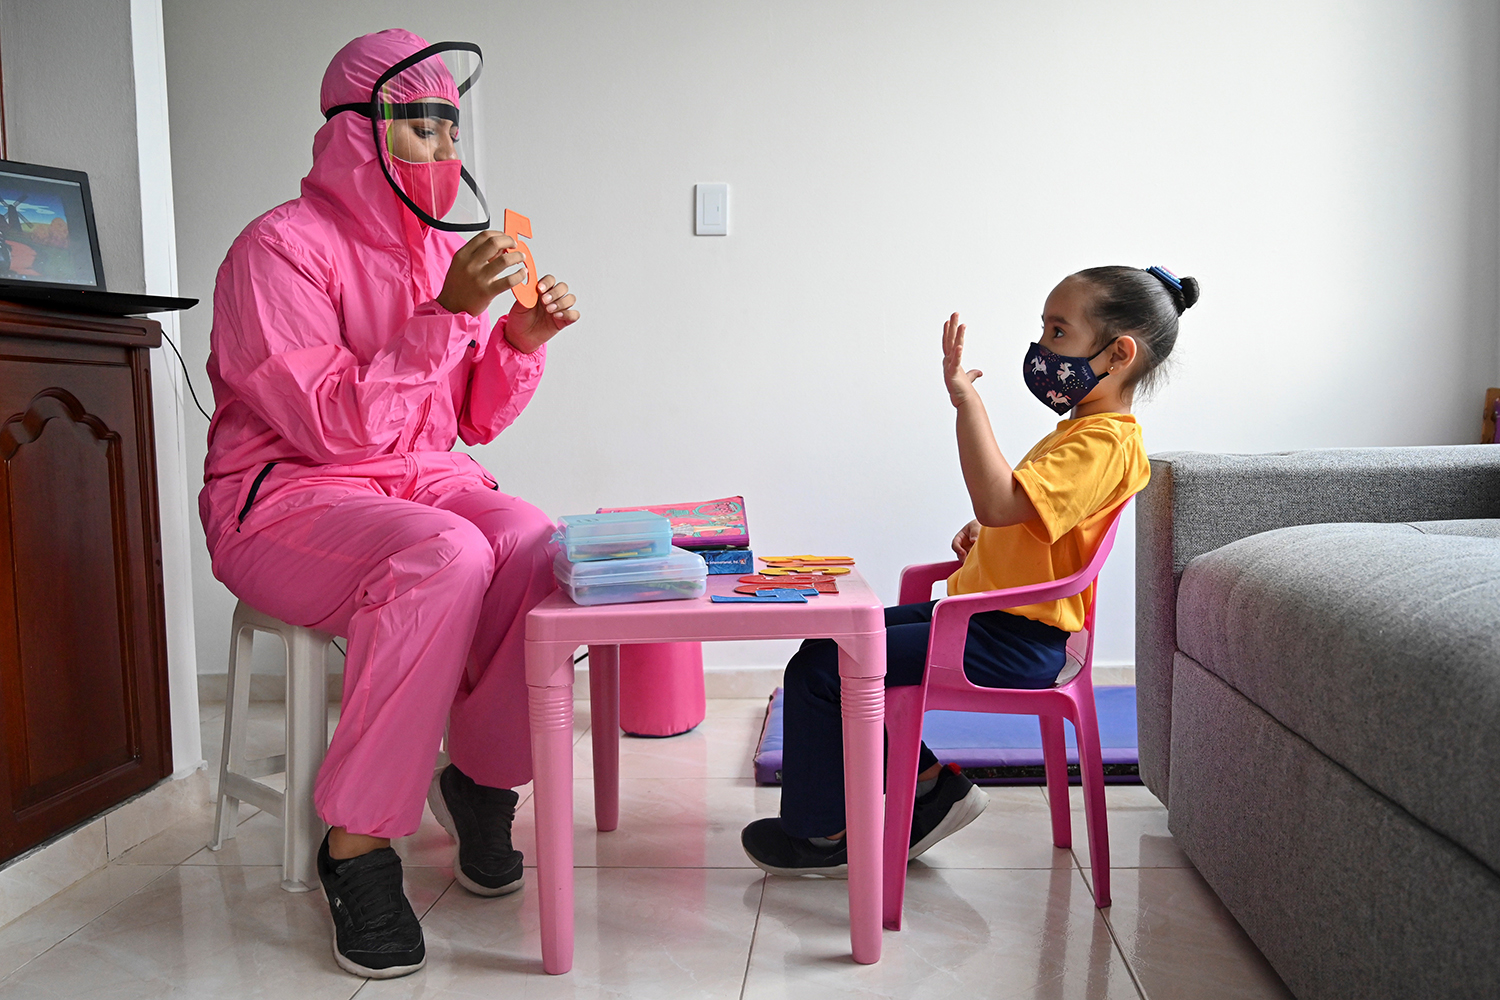 """A teacher wearing a biosecurity suit as a preventive measure against the spread of COVID-19 works with a girl at a home in Cali, Colombia, on Aug. 4 as part of a local kindergarten's """"teacher at home"""" program implemented to help children keep in touch with teachers and reduce the emotional impact of isolation. LUIS ROBAYO/AFP via Getty Images"""